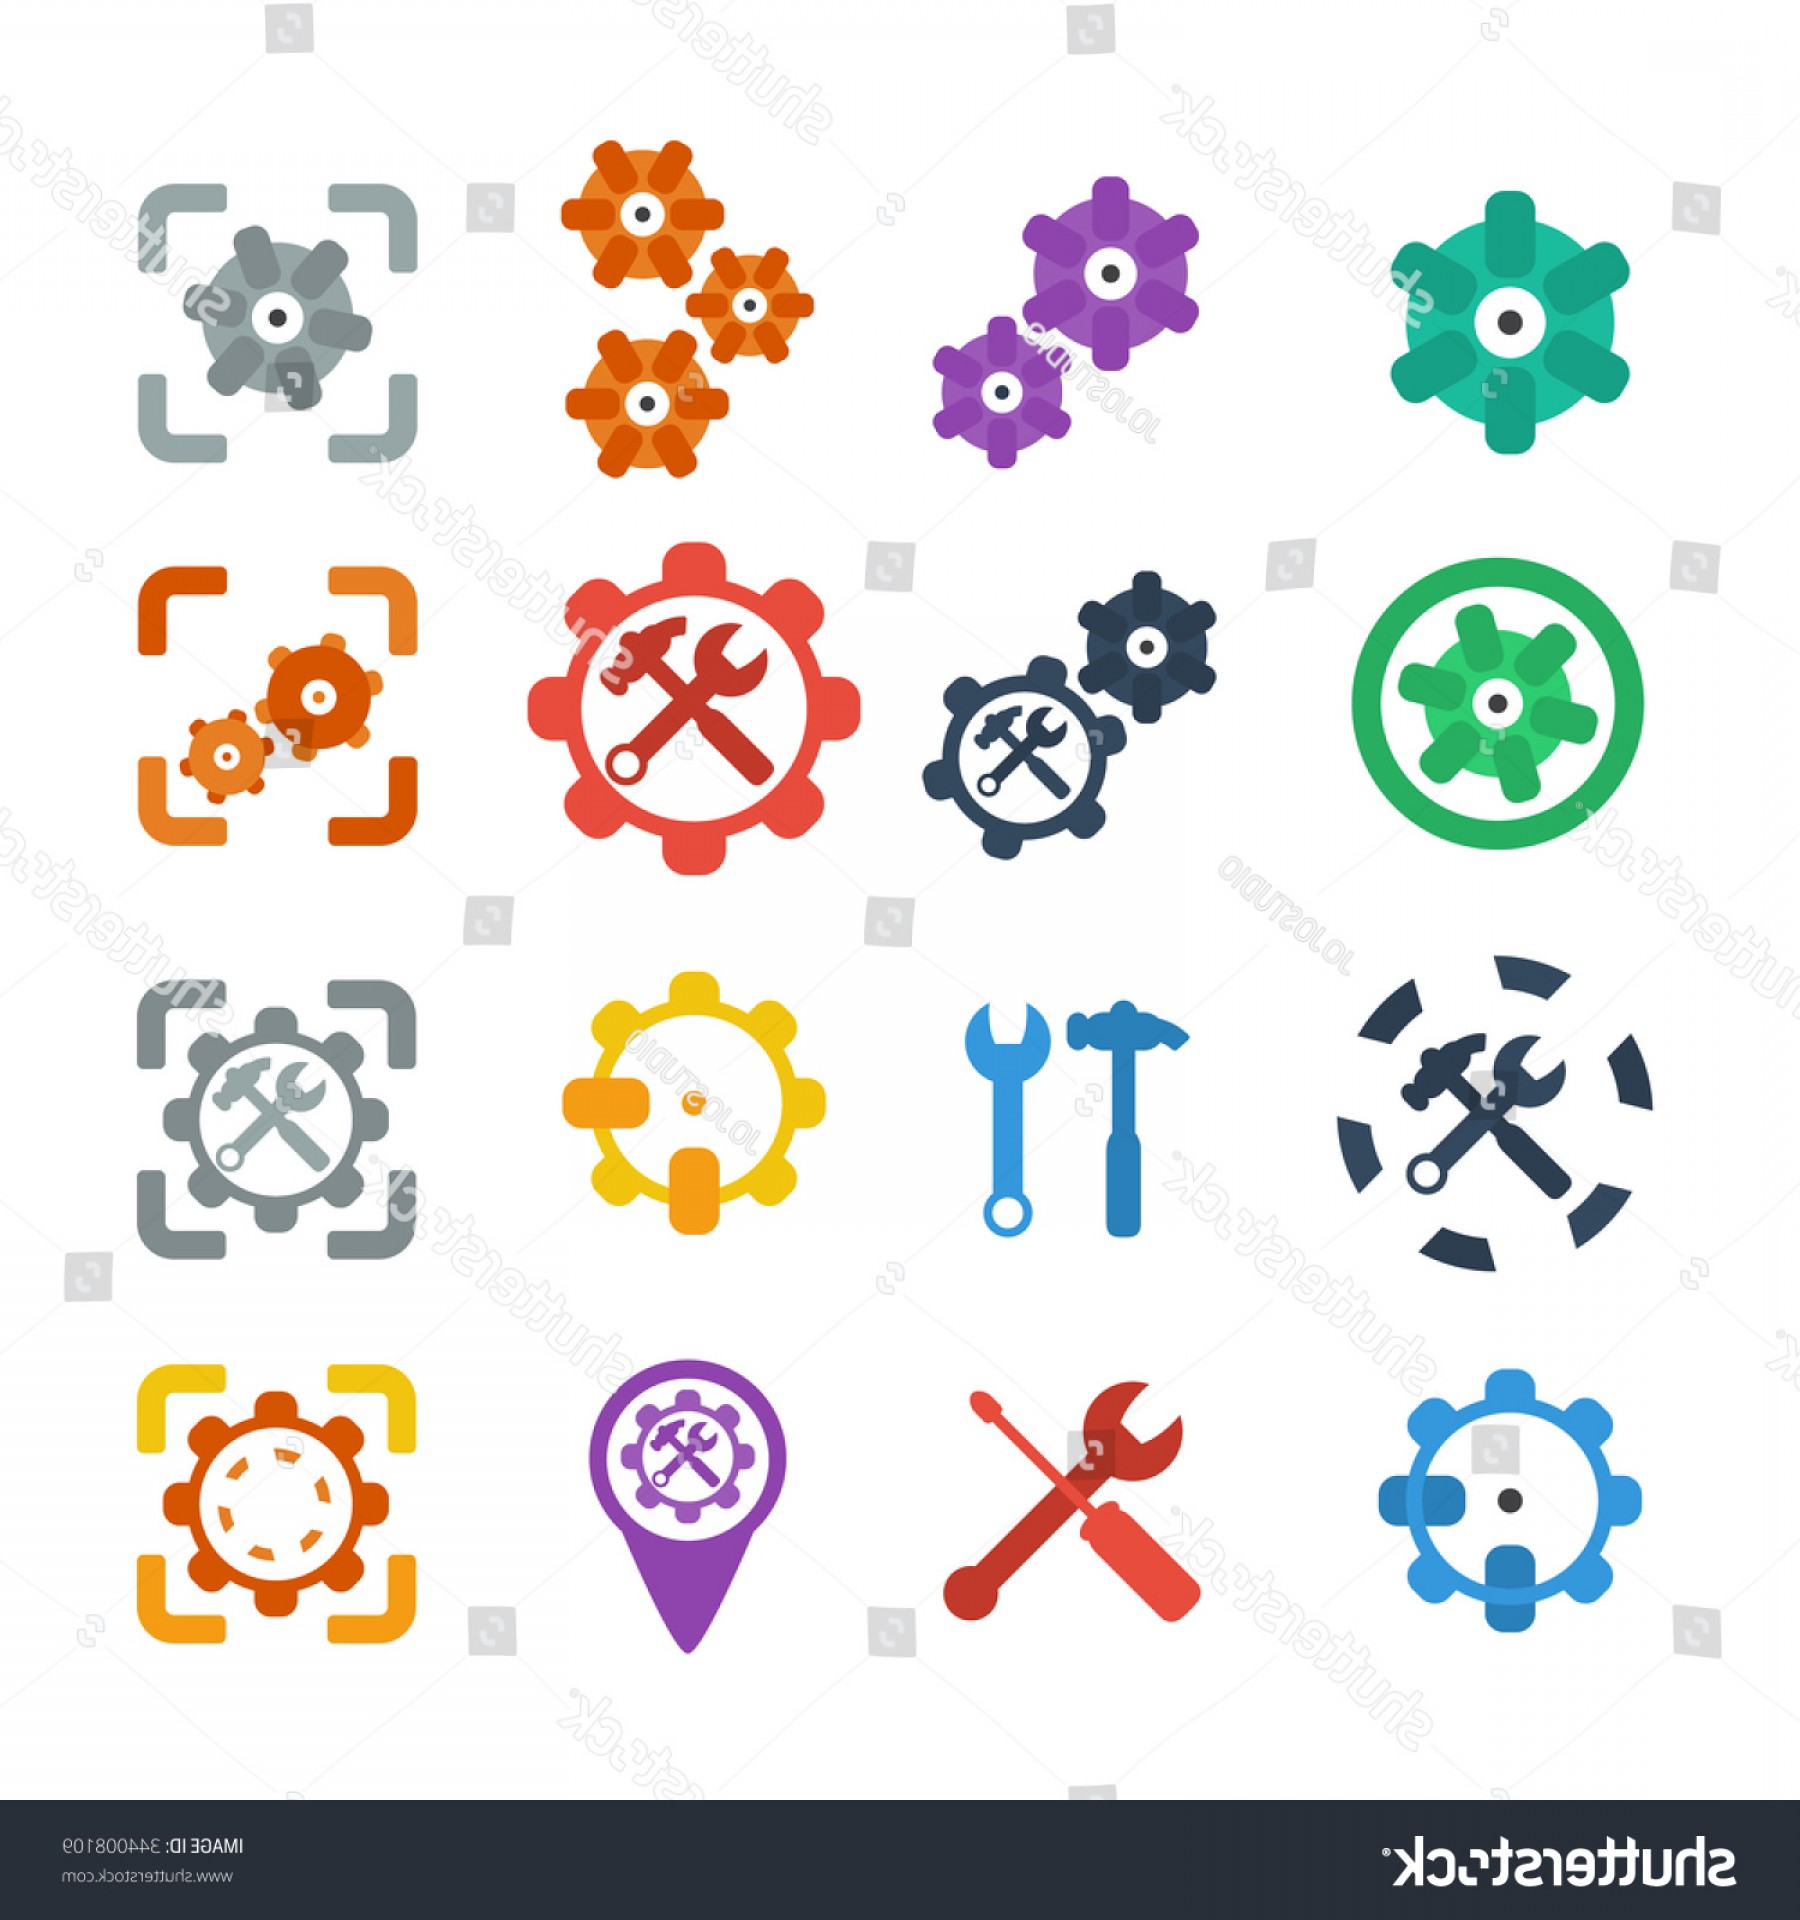 Vector Gear Graphics: Gear Icon Vector Cog Settings Symbol